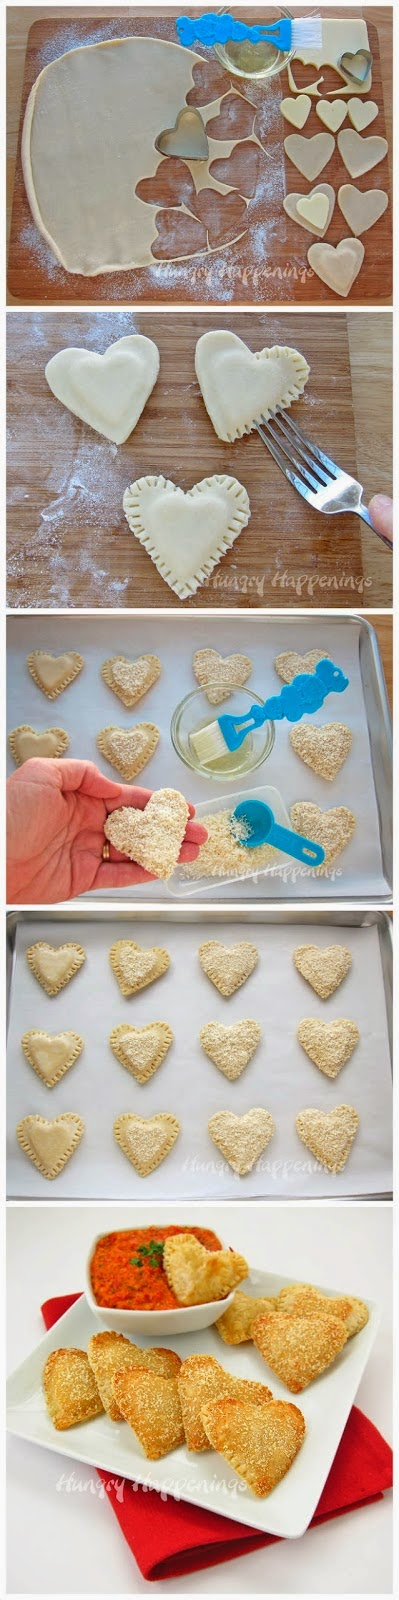 Mozzarella Cheese Filled Hearts